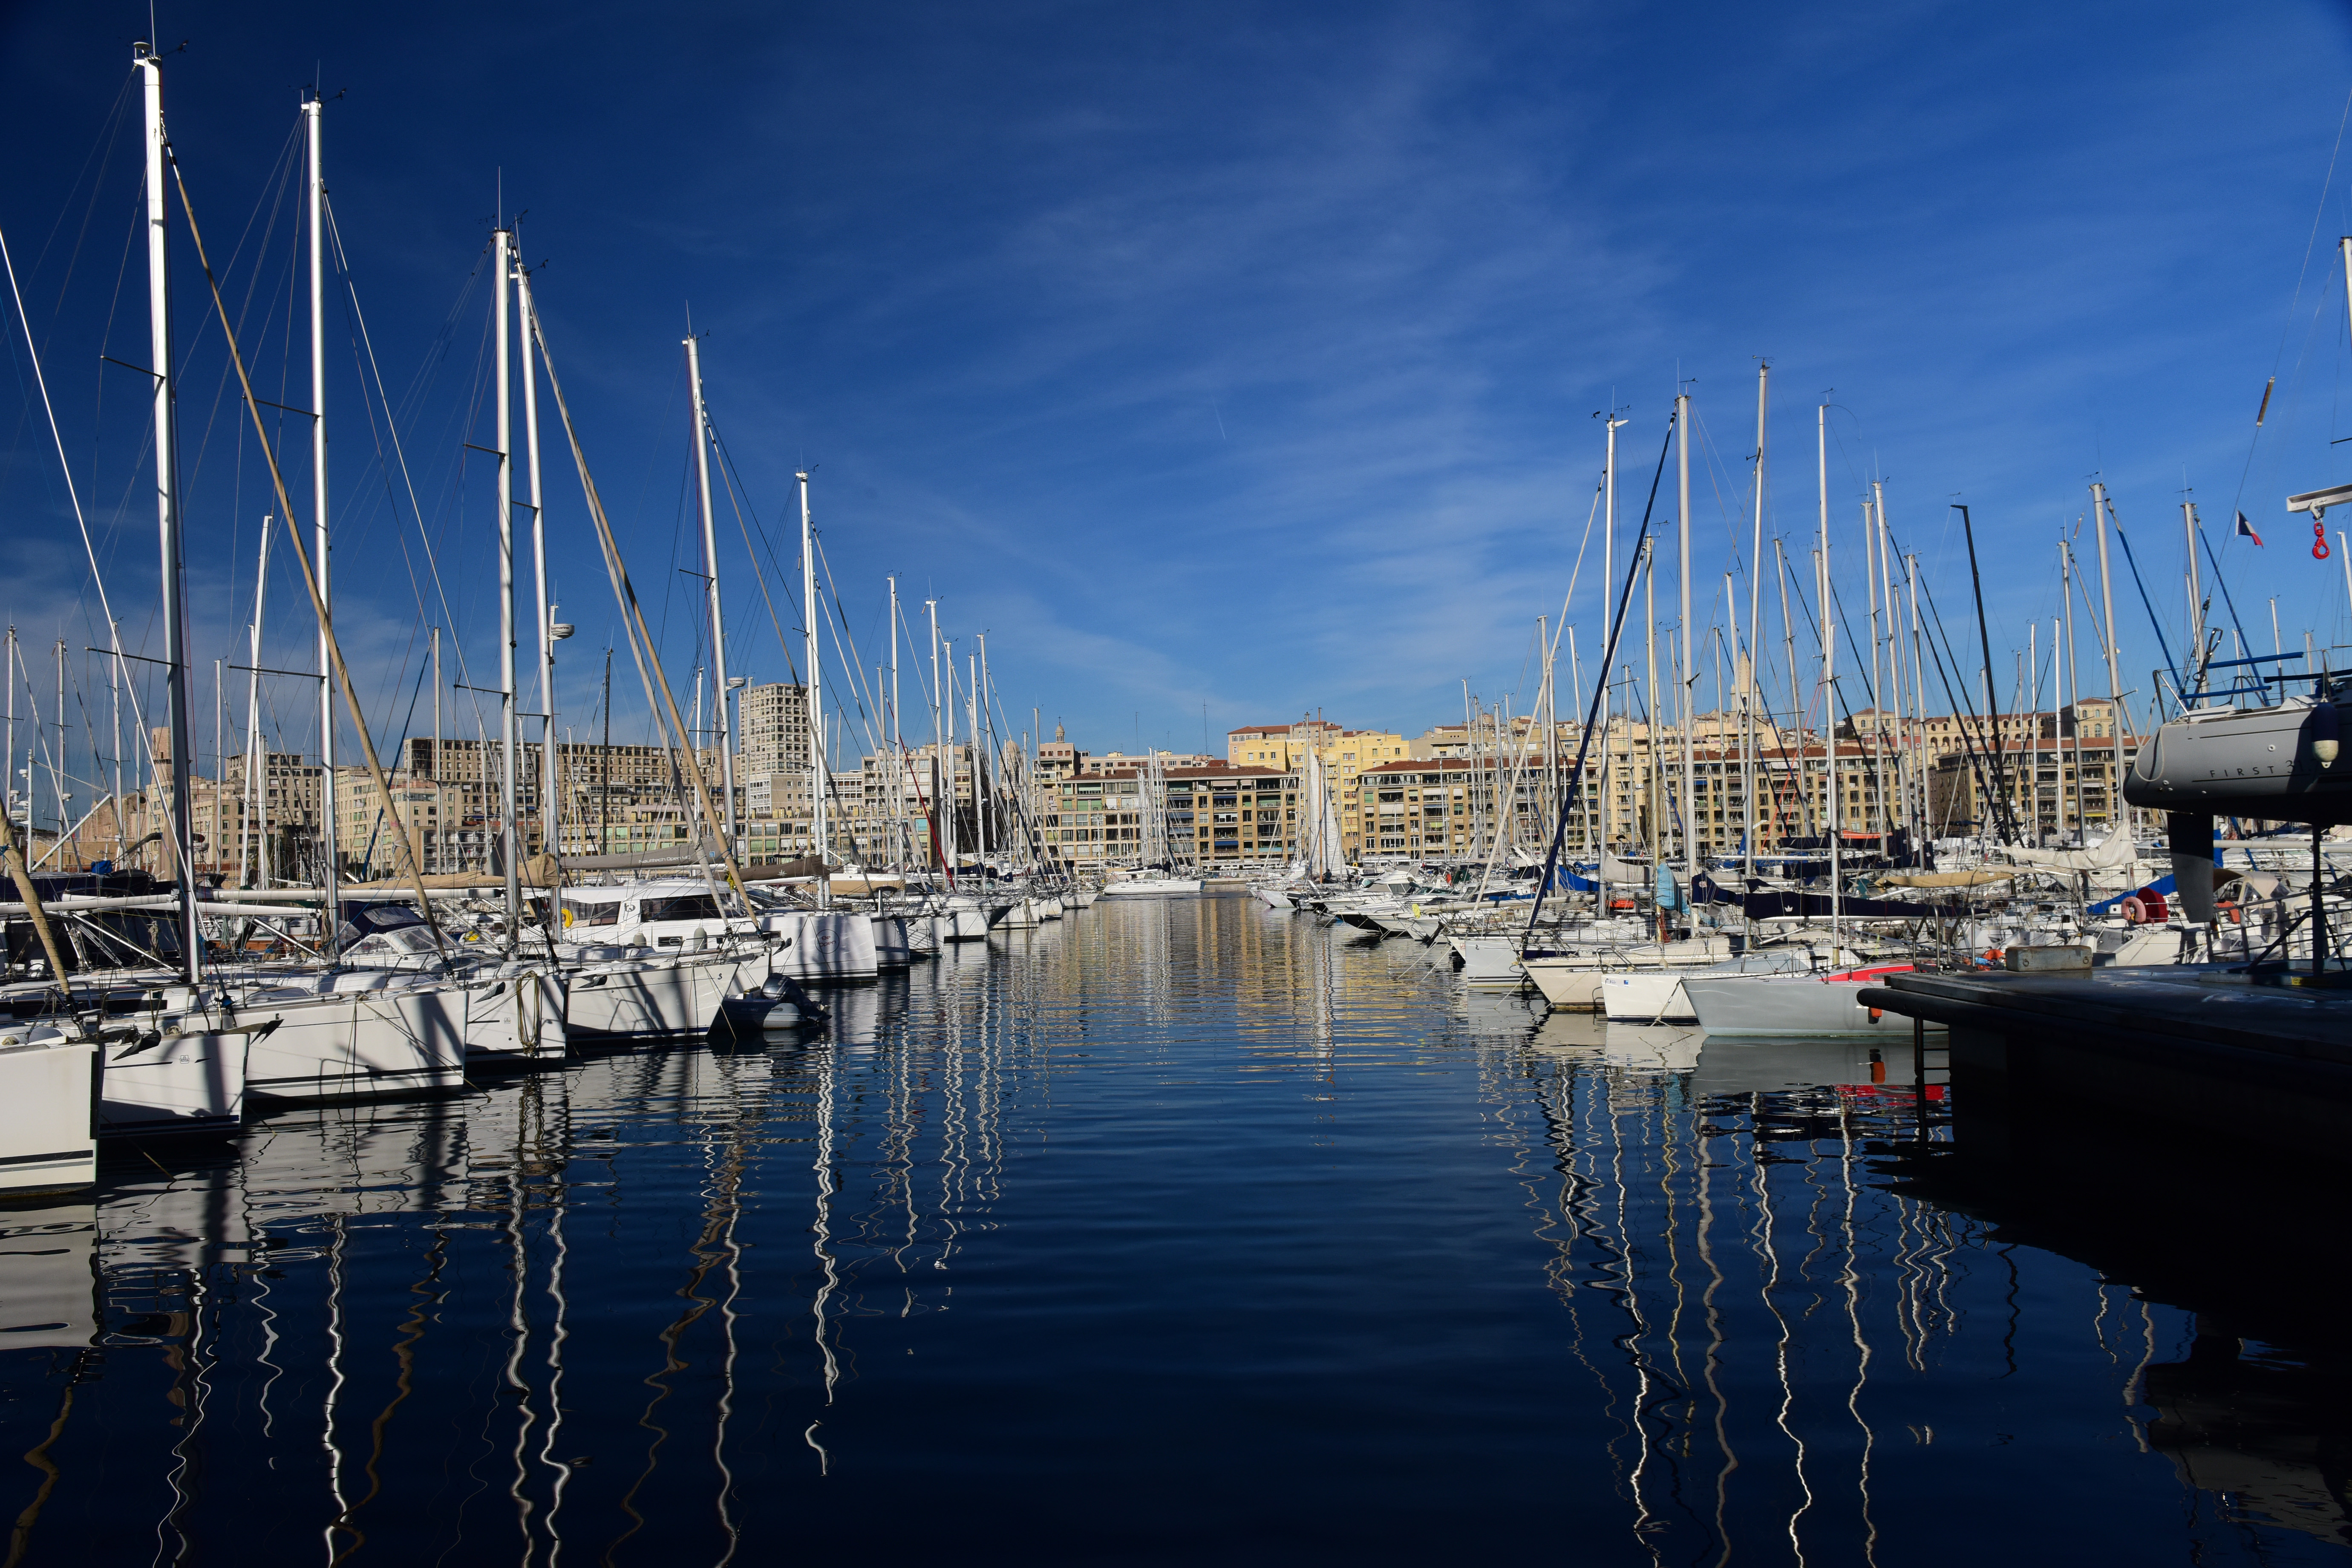 Boats in the Harbor in Marseille image - Free stock photo - Public Domain photo - CC0 Images